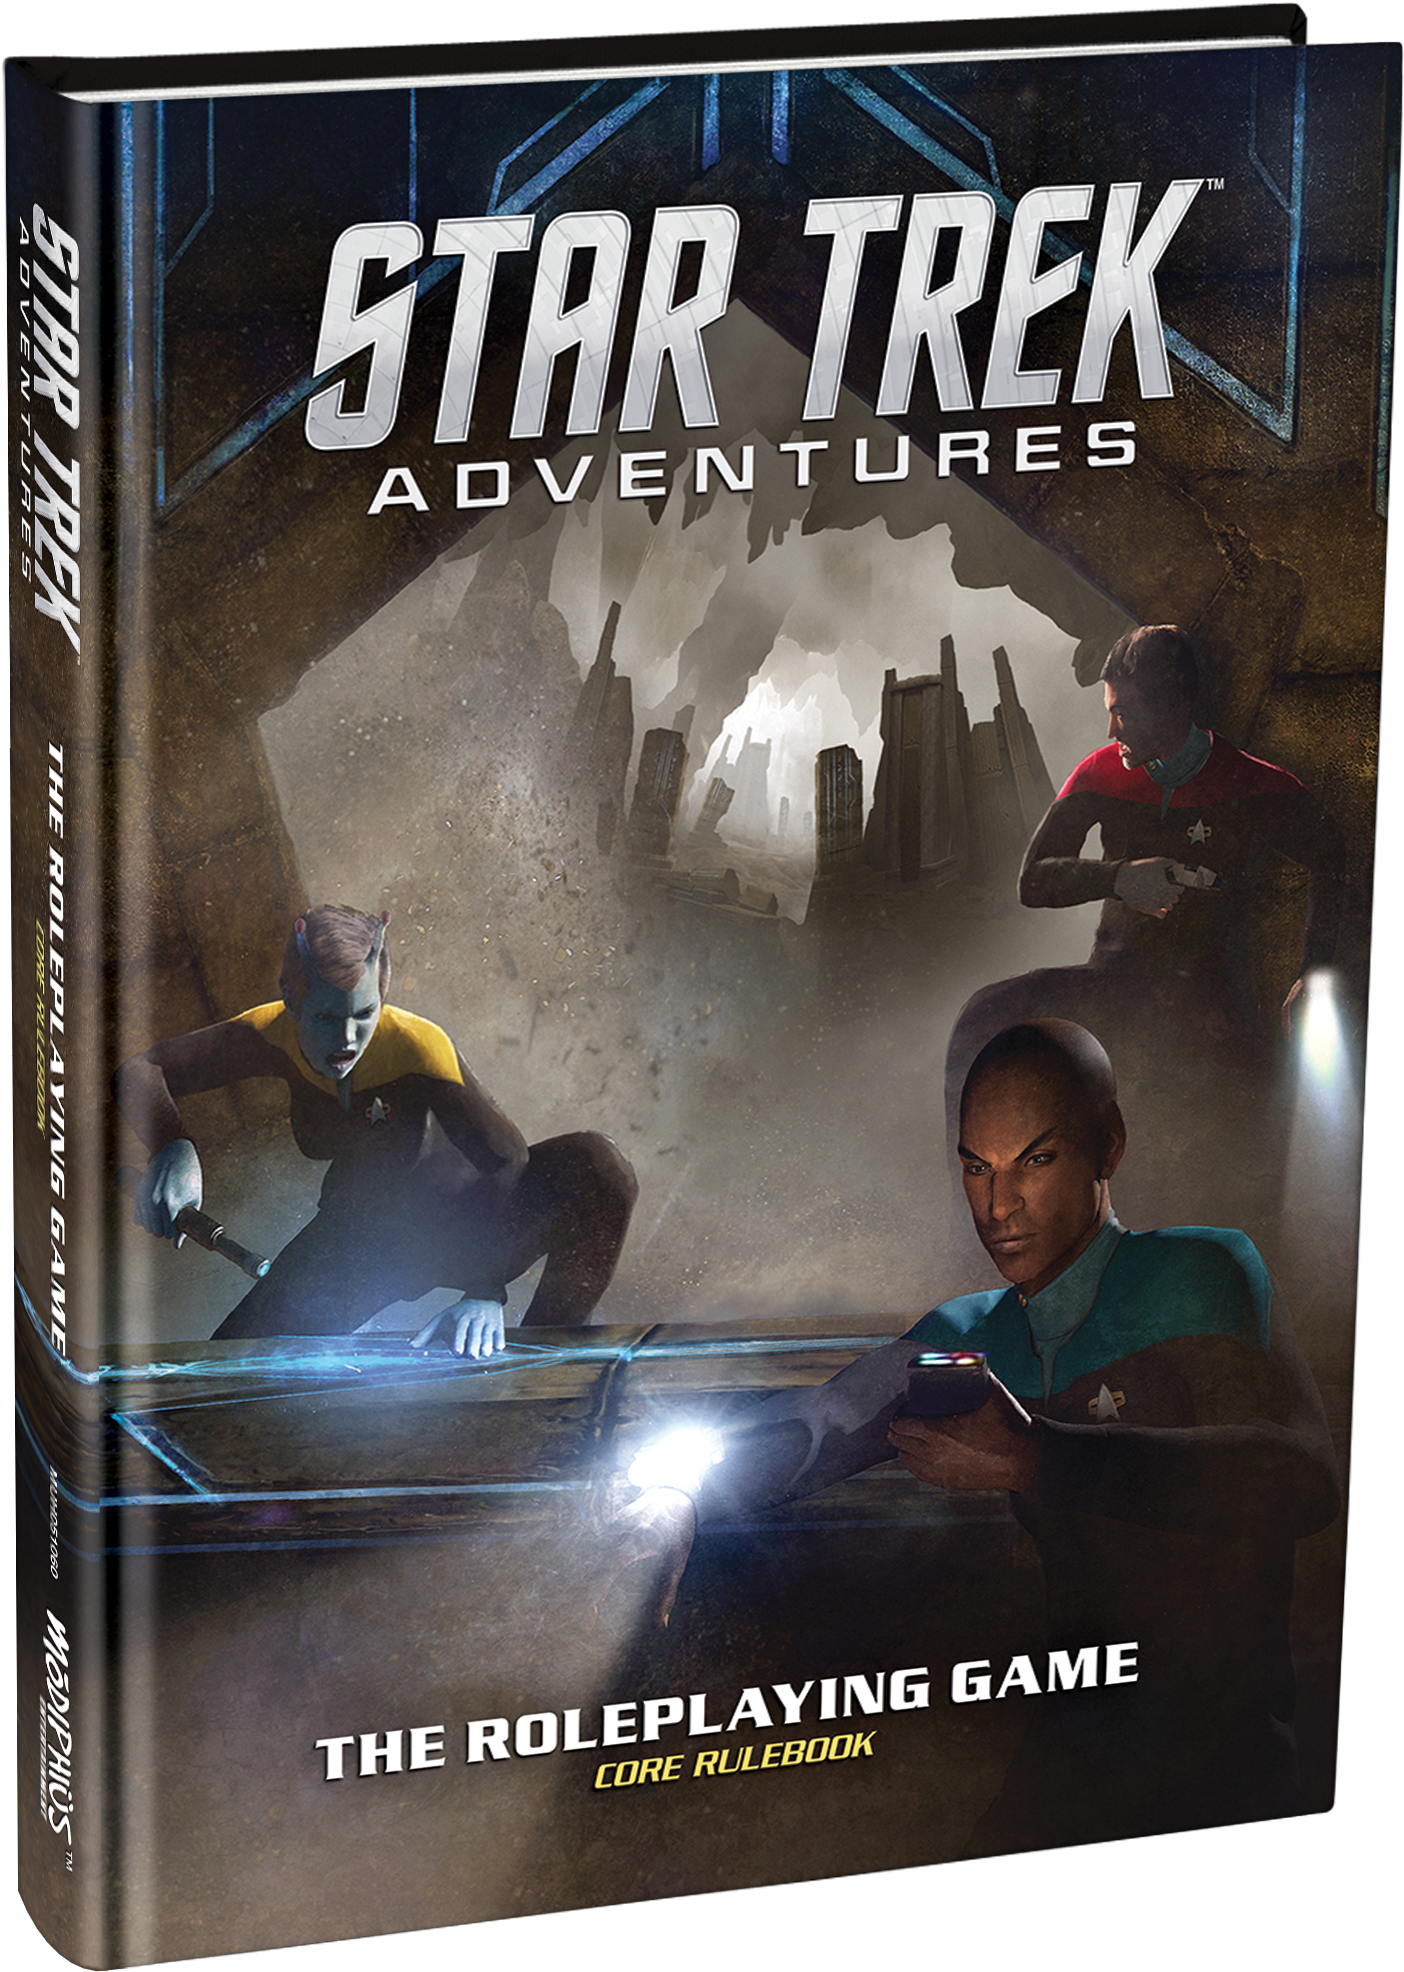 Star Trek Adventures Pdf Collection